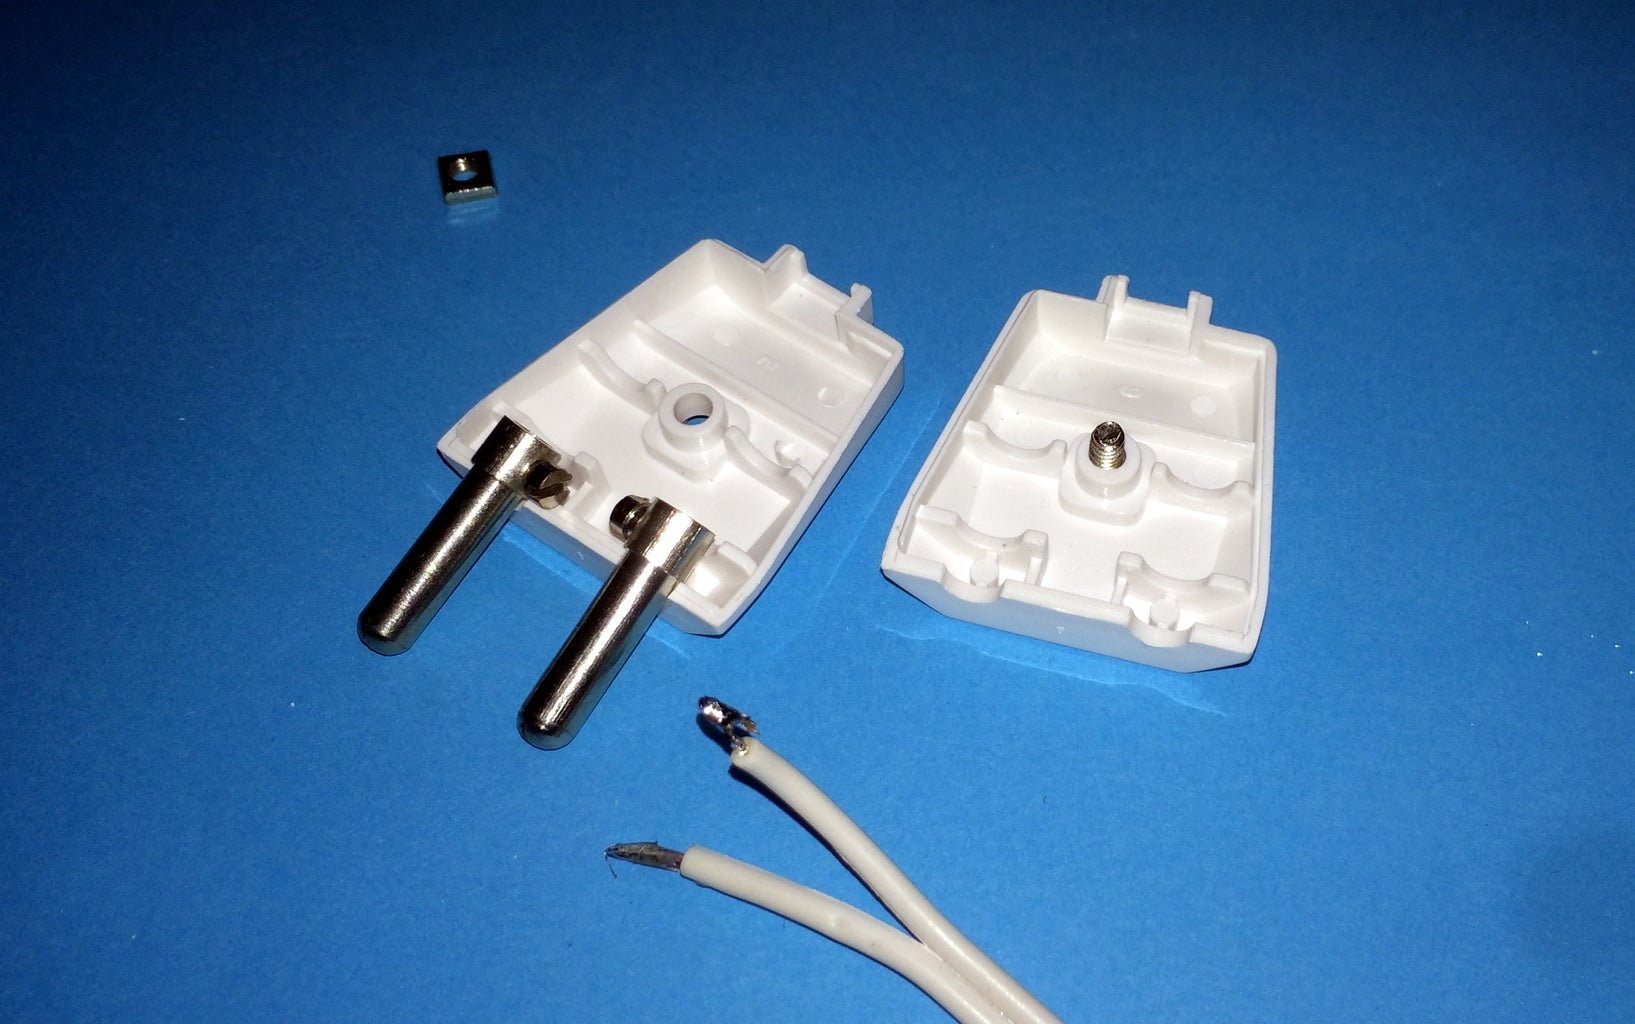 Making the Fixture: Wiring and Soldering